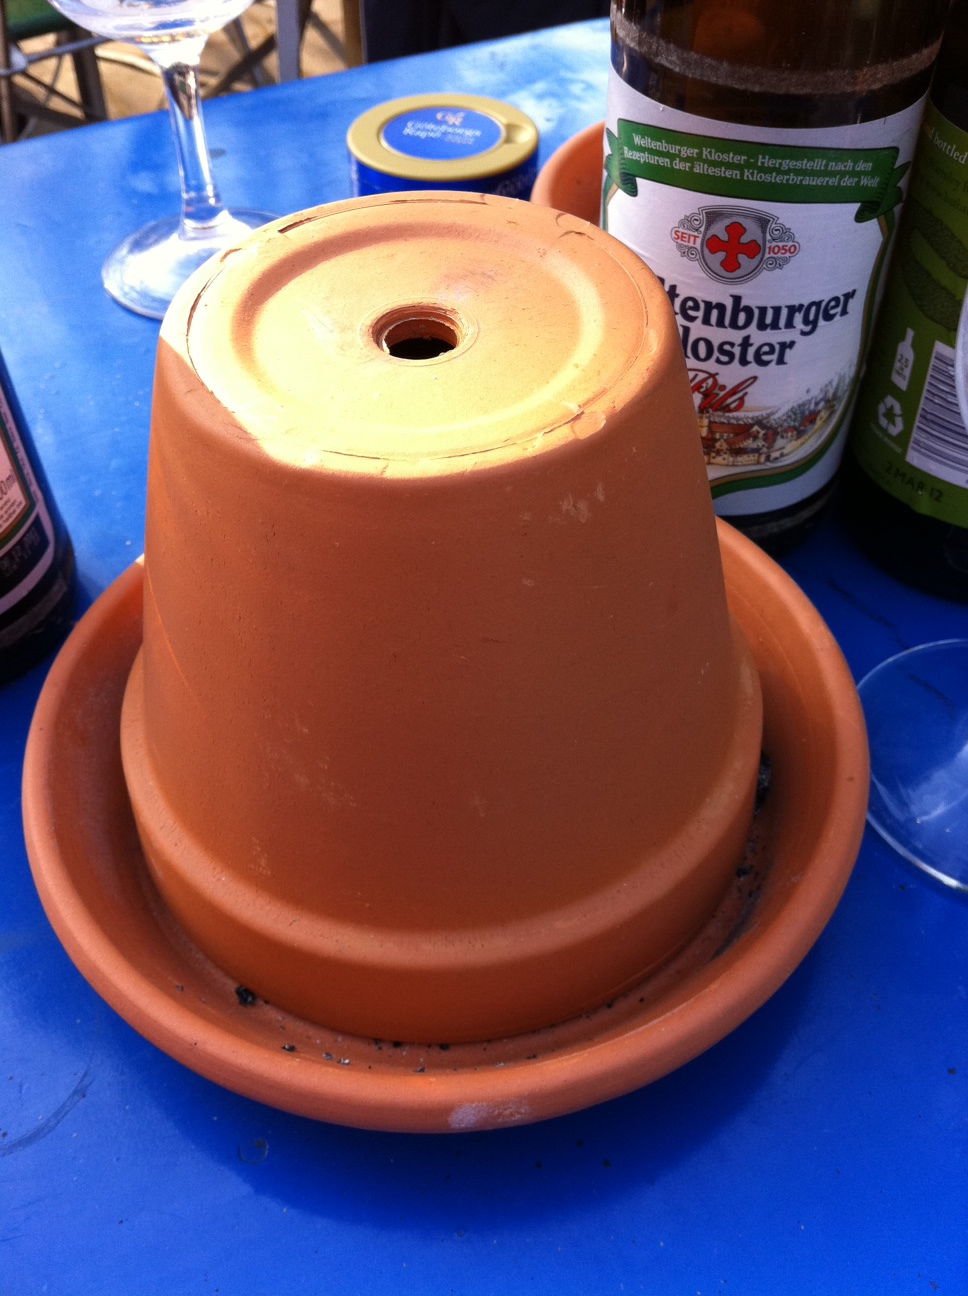 An inverted Flower pot and it's saucer makes a great ashtray because it hides the ugly contents and controls smoke flow, smell and ash particles. Cheap and commonly used, a great adaptation.